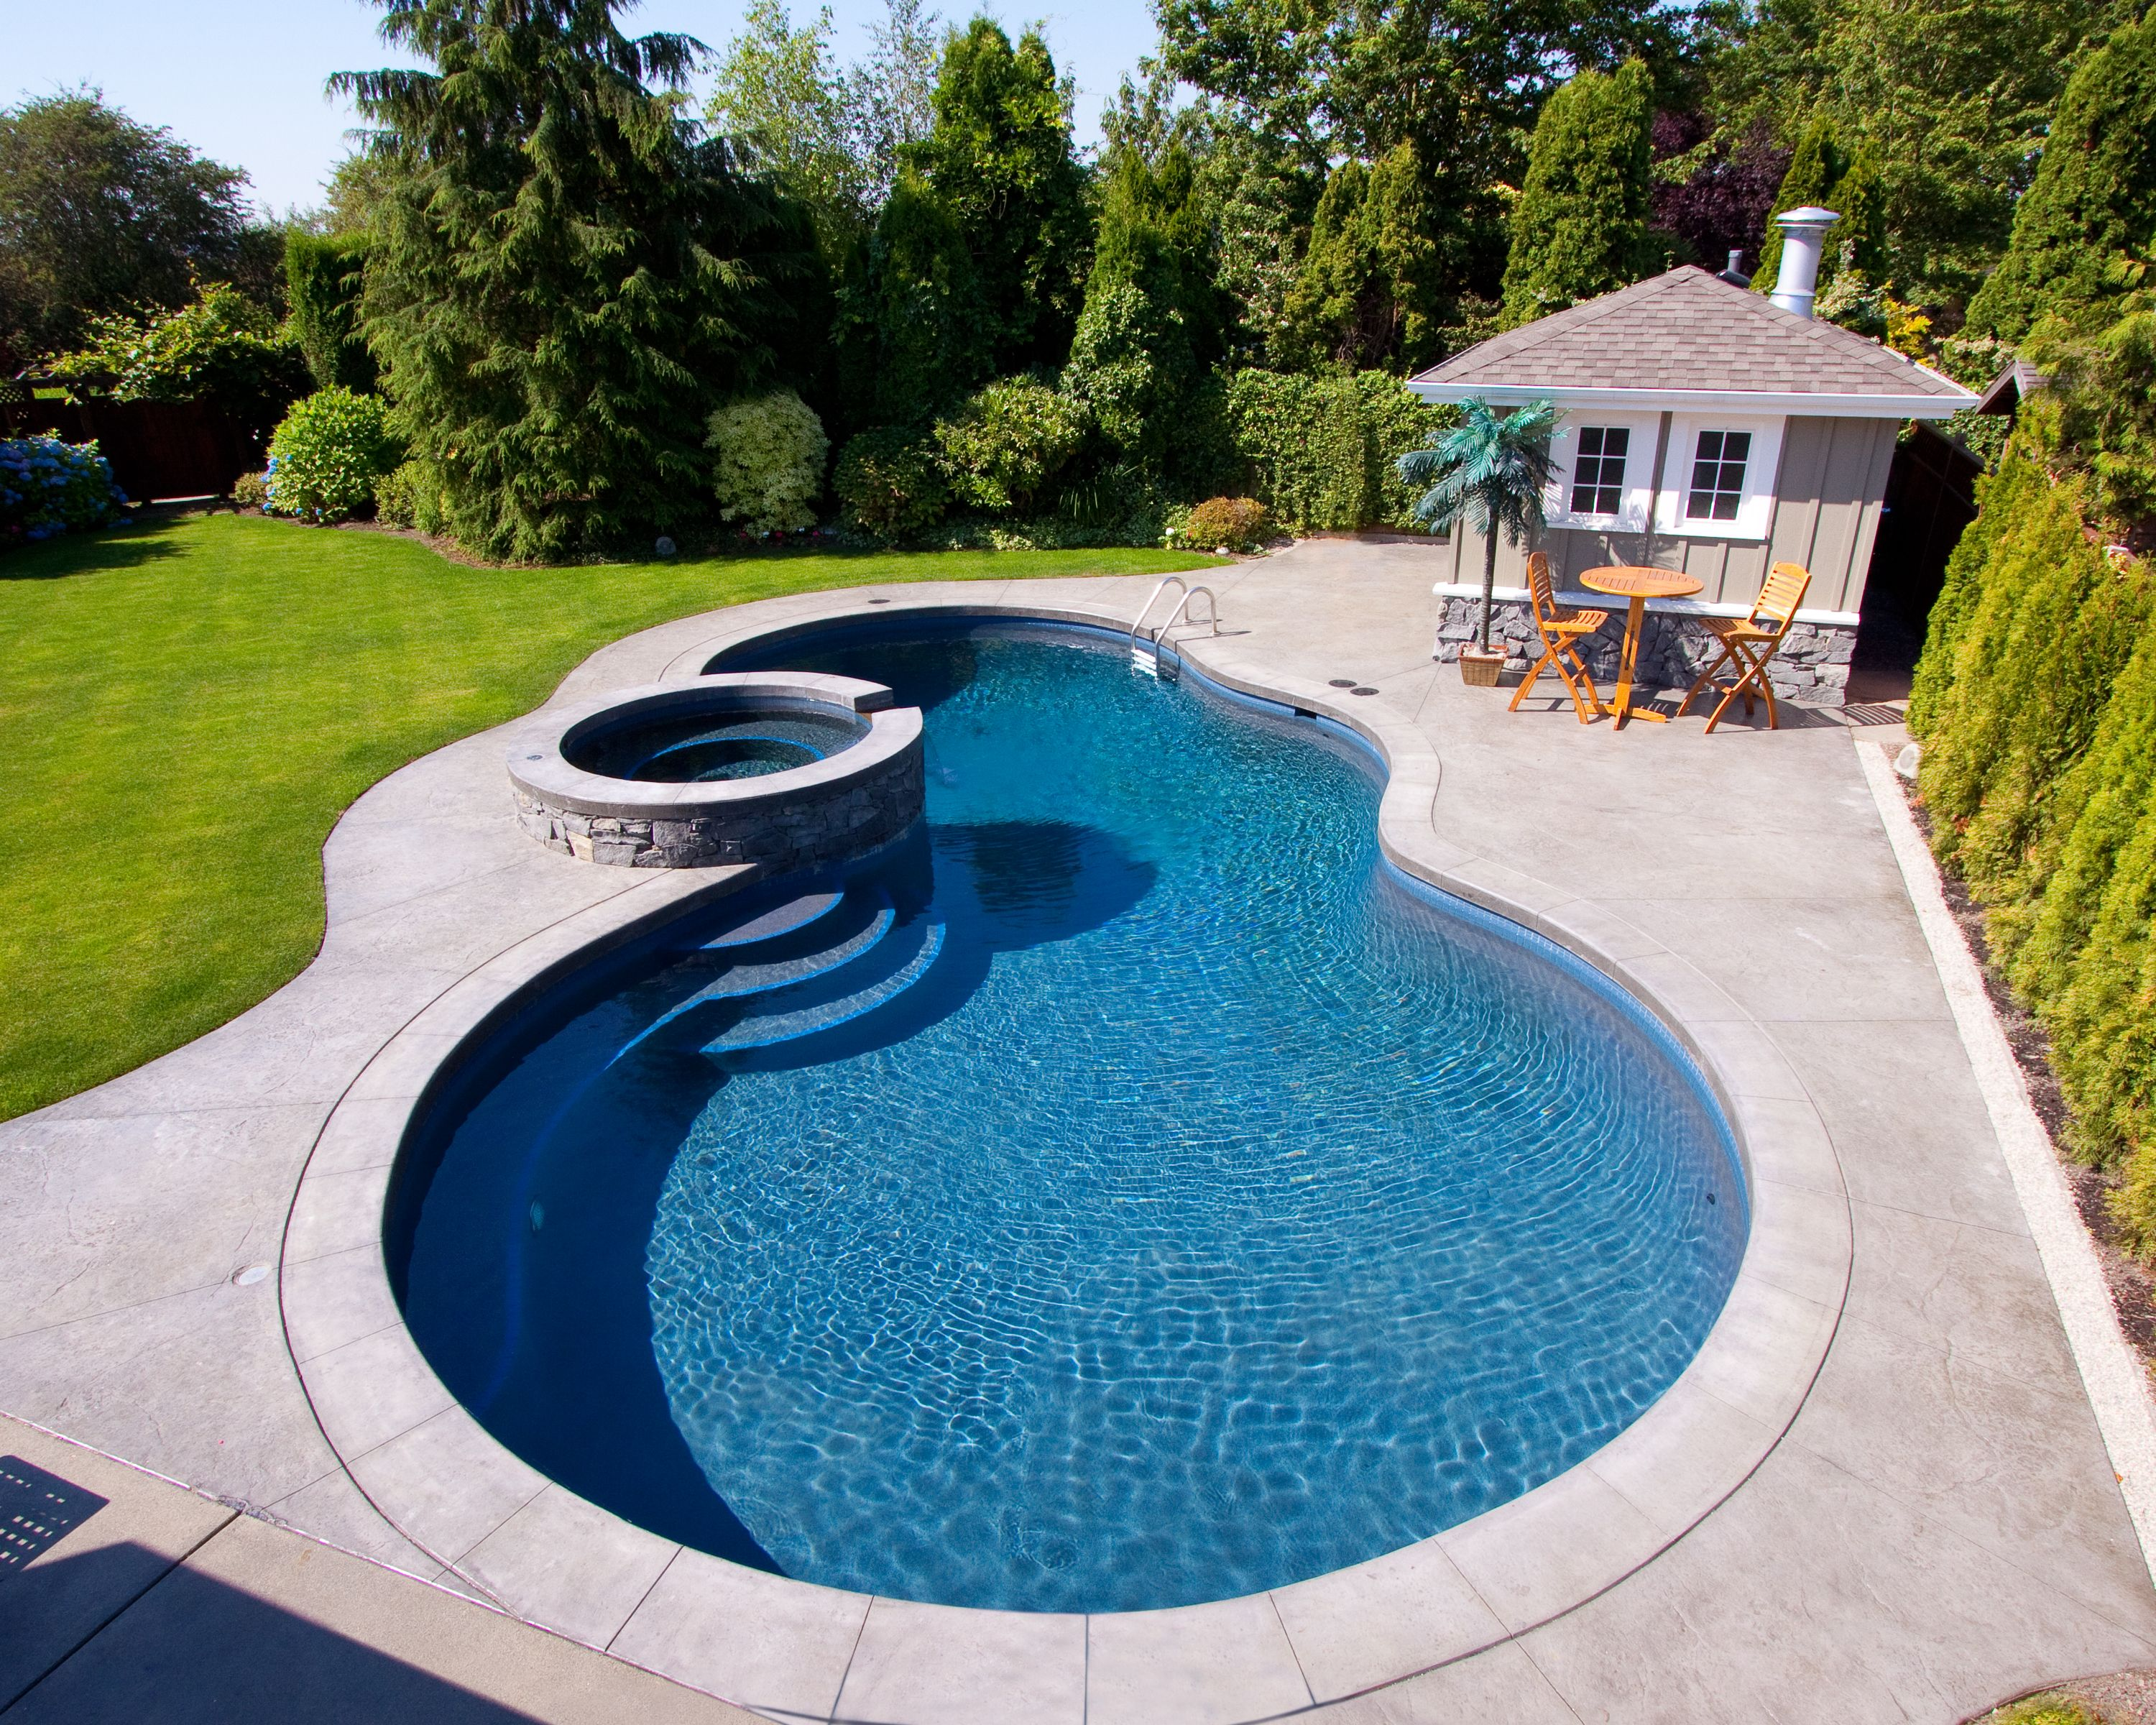 Alka Pool Pool Whirlpool See Best Ideas About Color Quartz Beautiful And Stairs